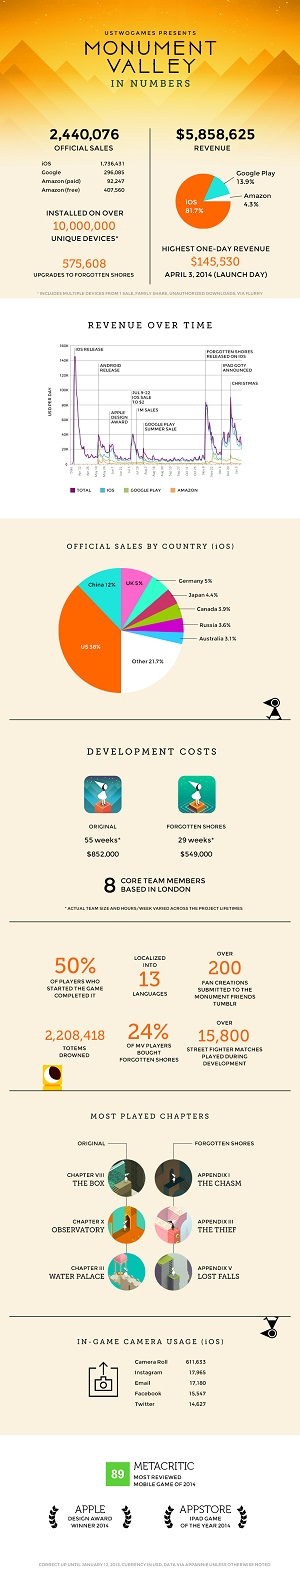 The Monument Valley infographic